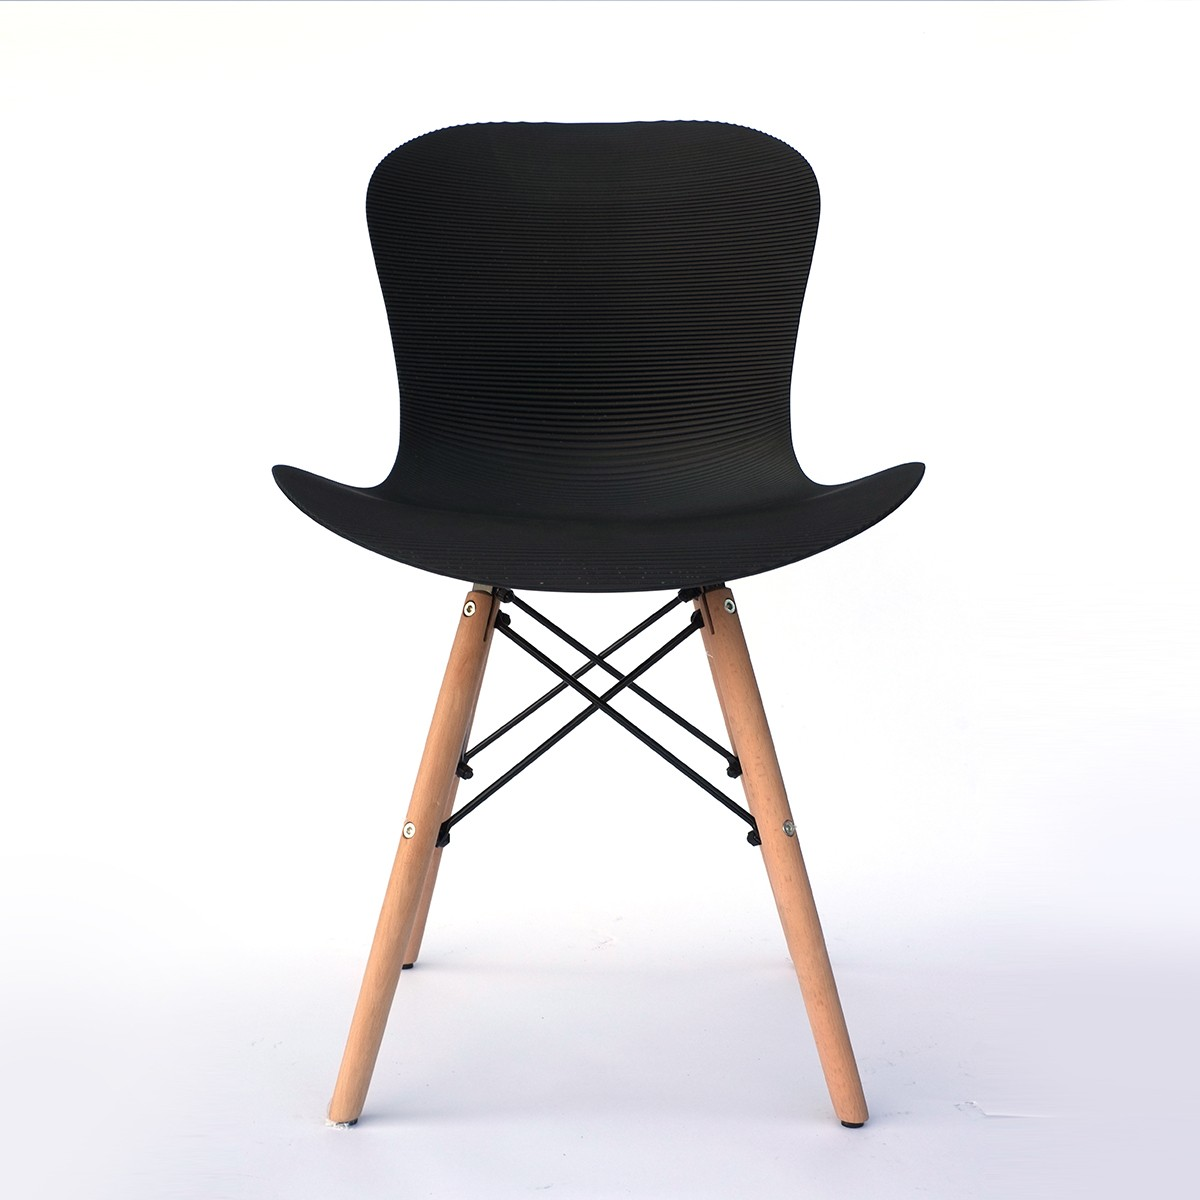 Corrugated Plastic Dining Chair in Black (T806E001-BK)